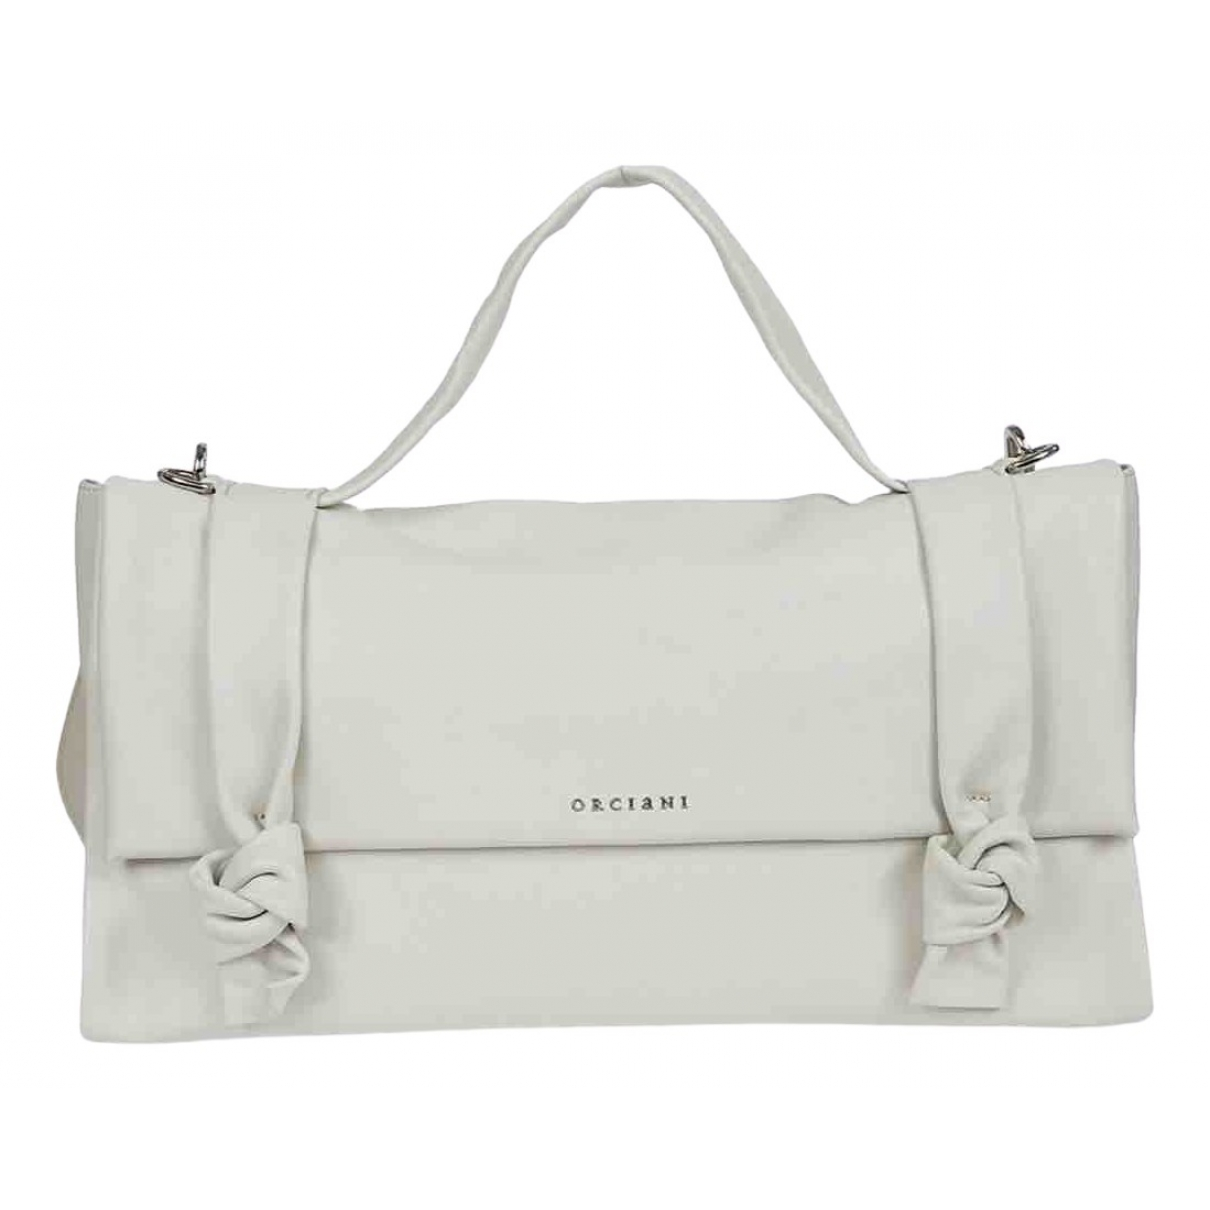 Orciani \N White Leather handbag for Women \N